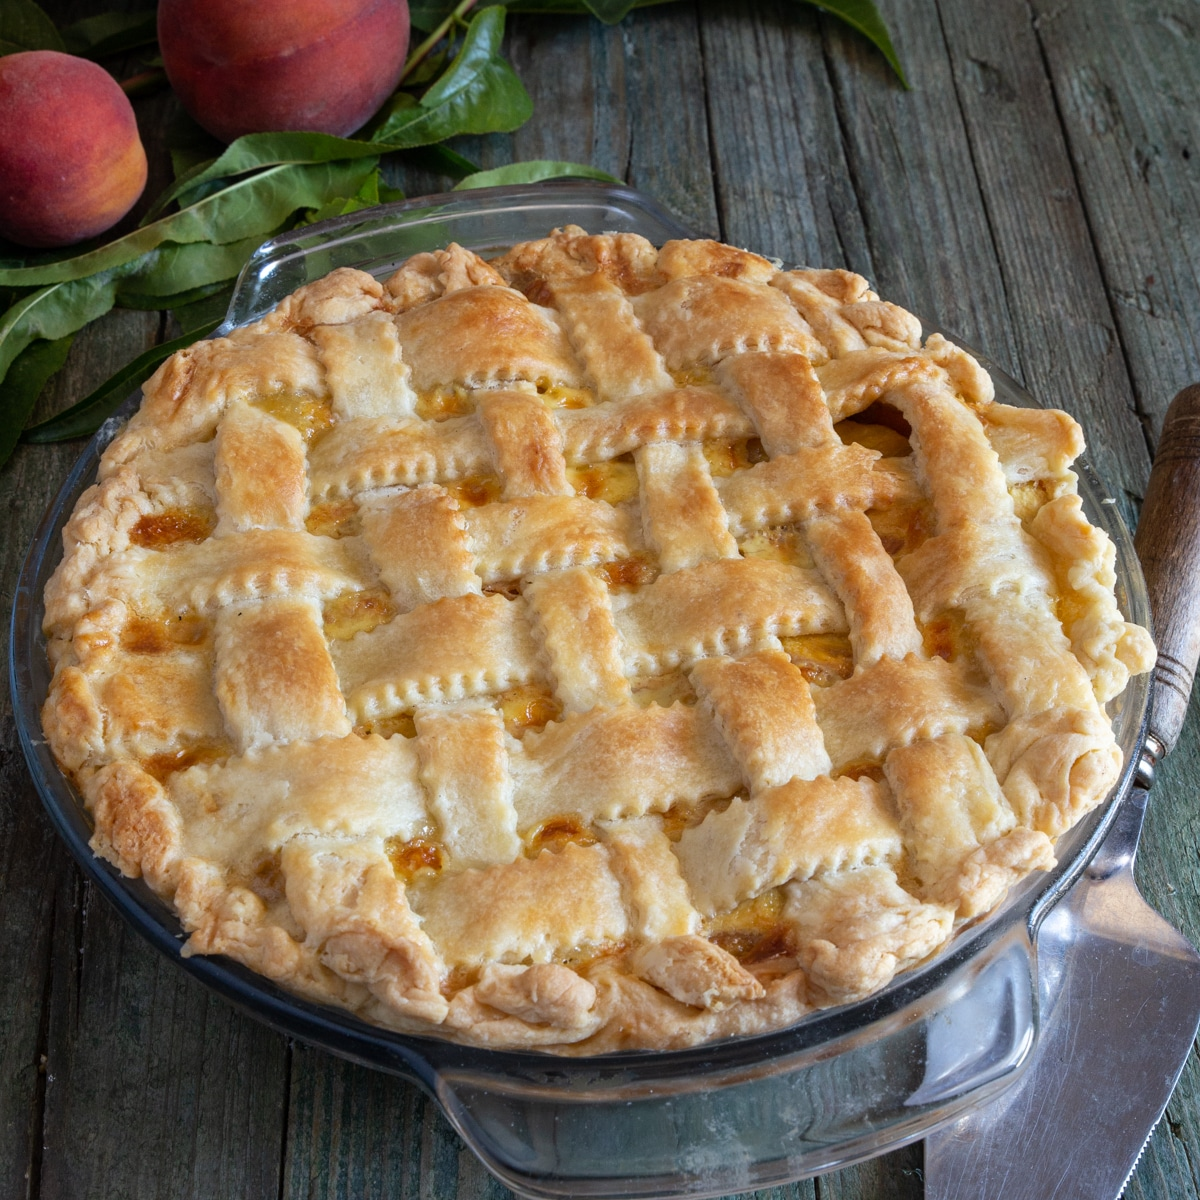 Peach pie in a glass plate, with 2 peaches and leaves on a wooden board.